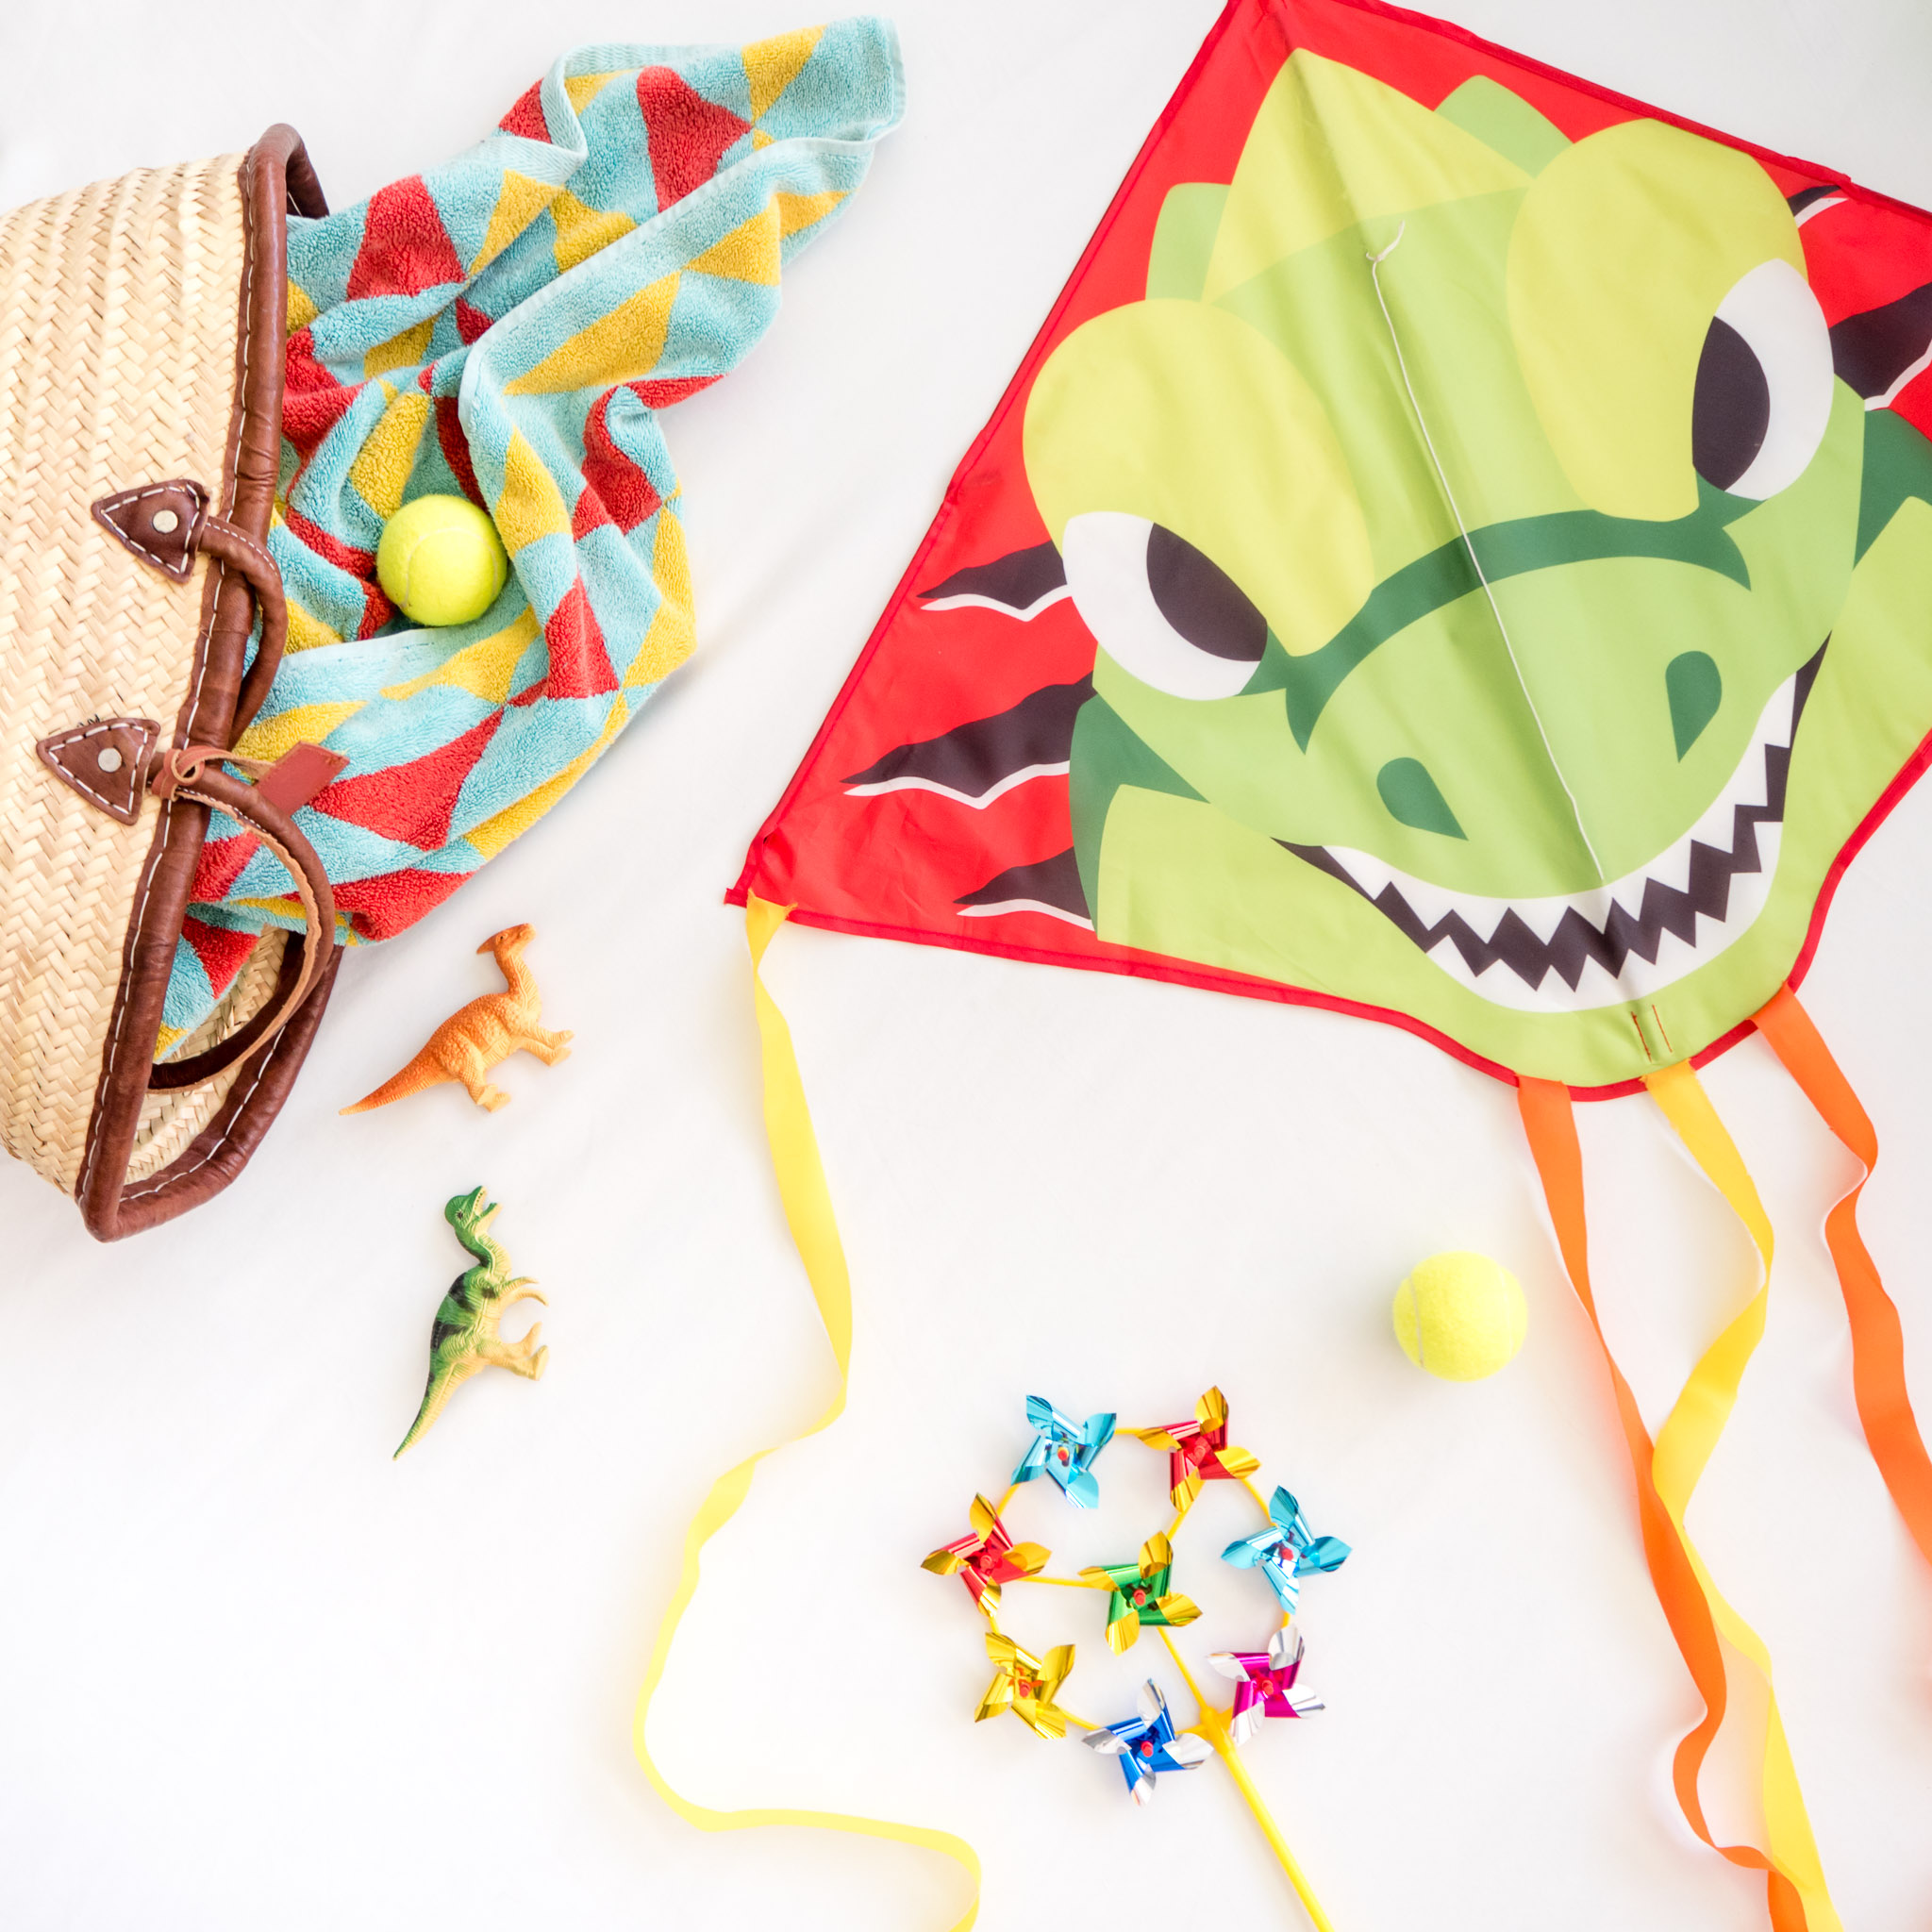 Dinosaur kite by Zoom Kites